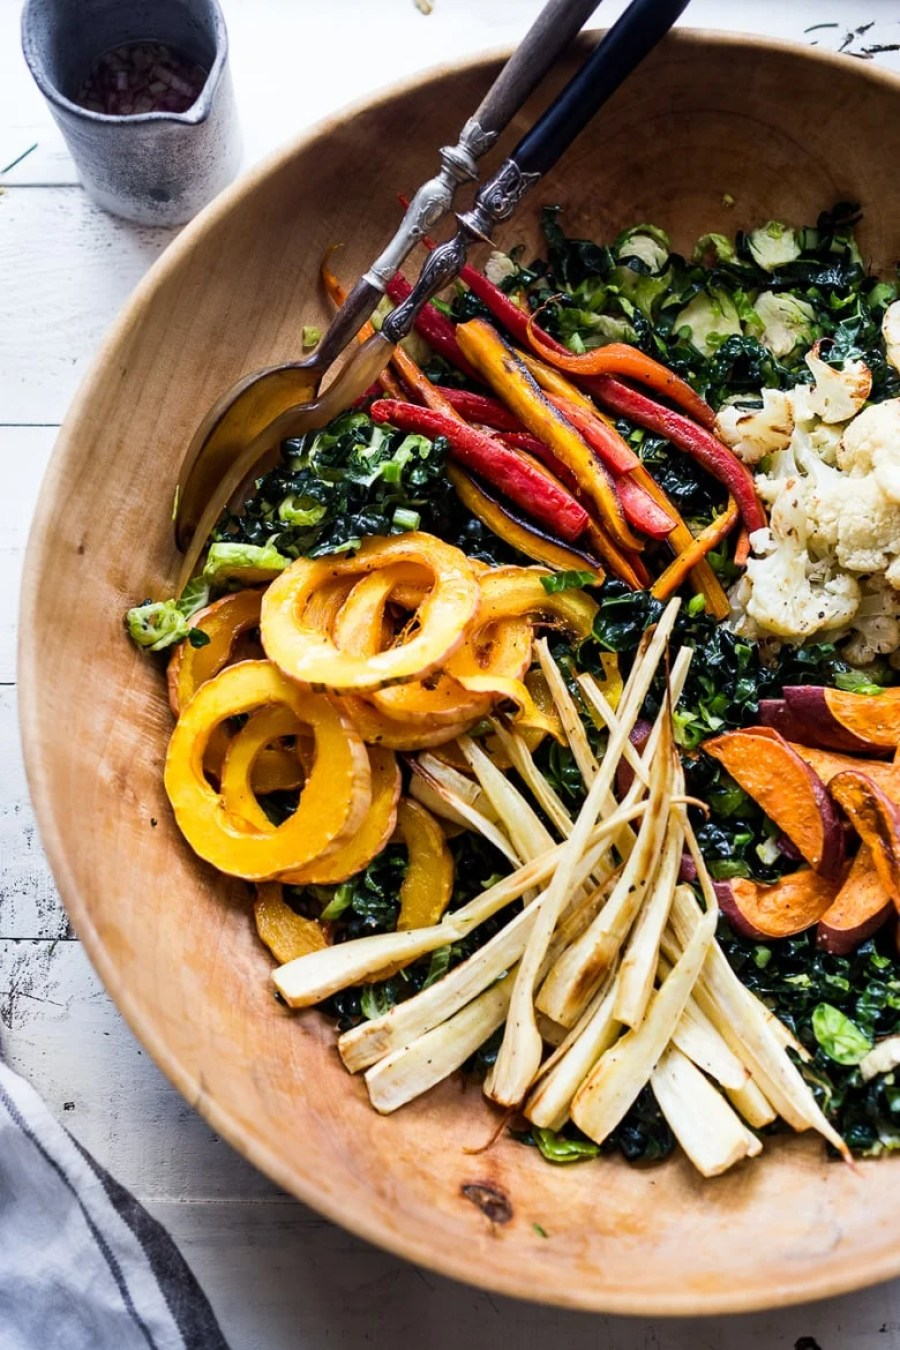 EAT CLEAN w/ these 20 simple PLANT-BASED MEALS! Like this Roasted Veggie Salad over Kale and Brussel Slaw with a Curry Maple vinaigrette. Delicious an healthy! VEGAN GF!   www.feastingathome.com